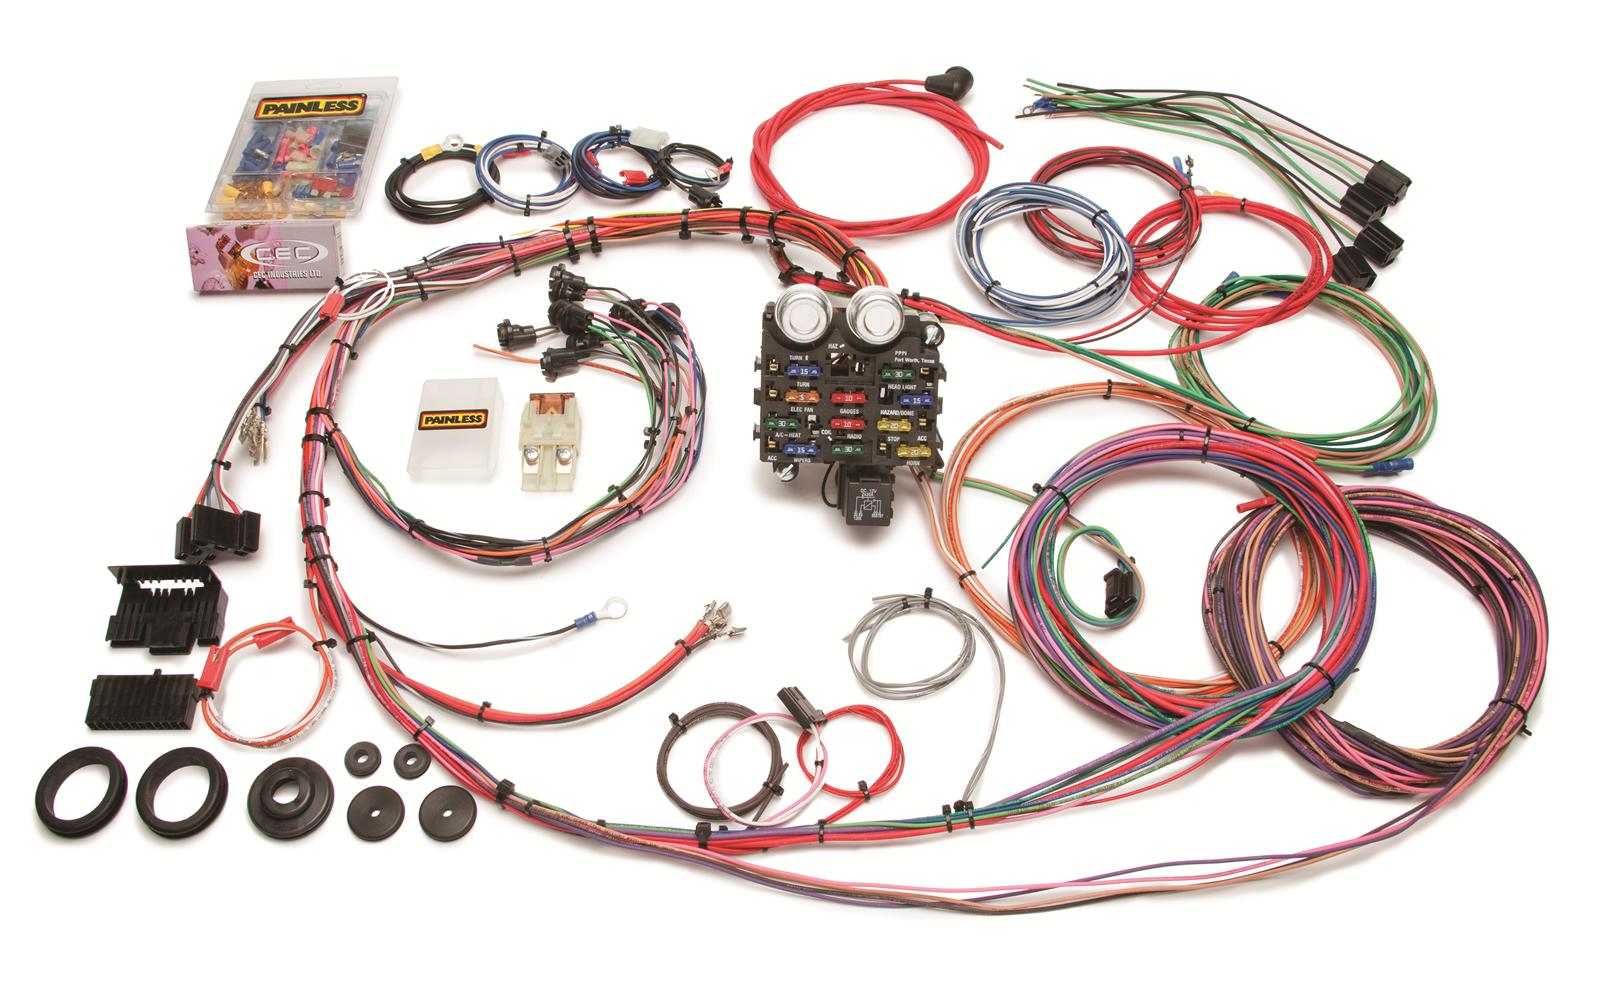 prf 10112_xl painless performance 19 circuit gmc chevy truck harnesses 10112 gm truck wiring harness at metegol.co